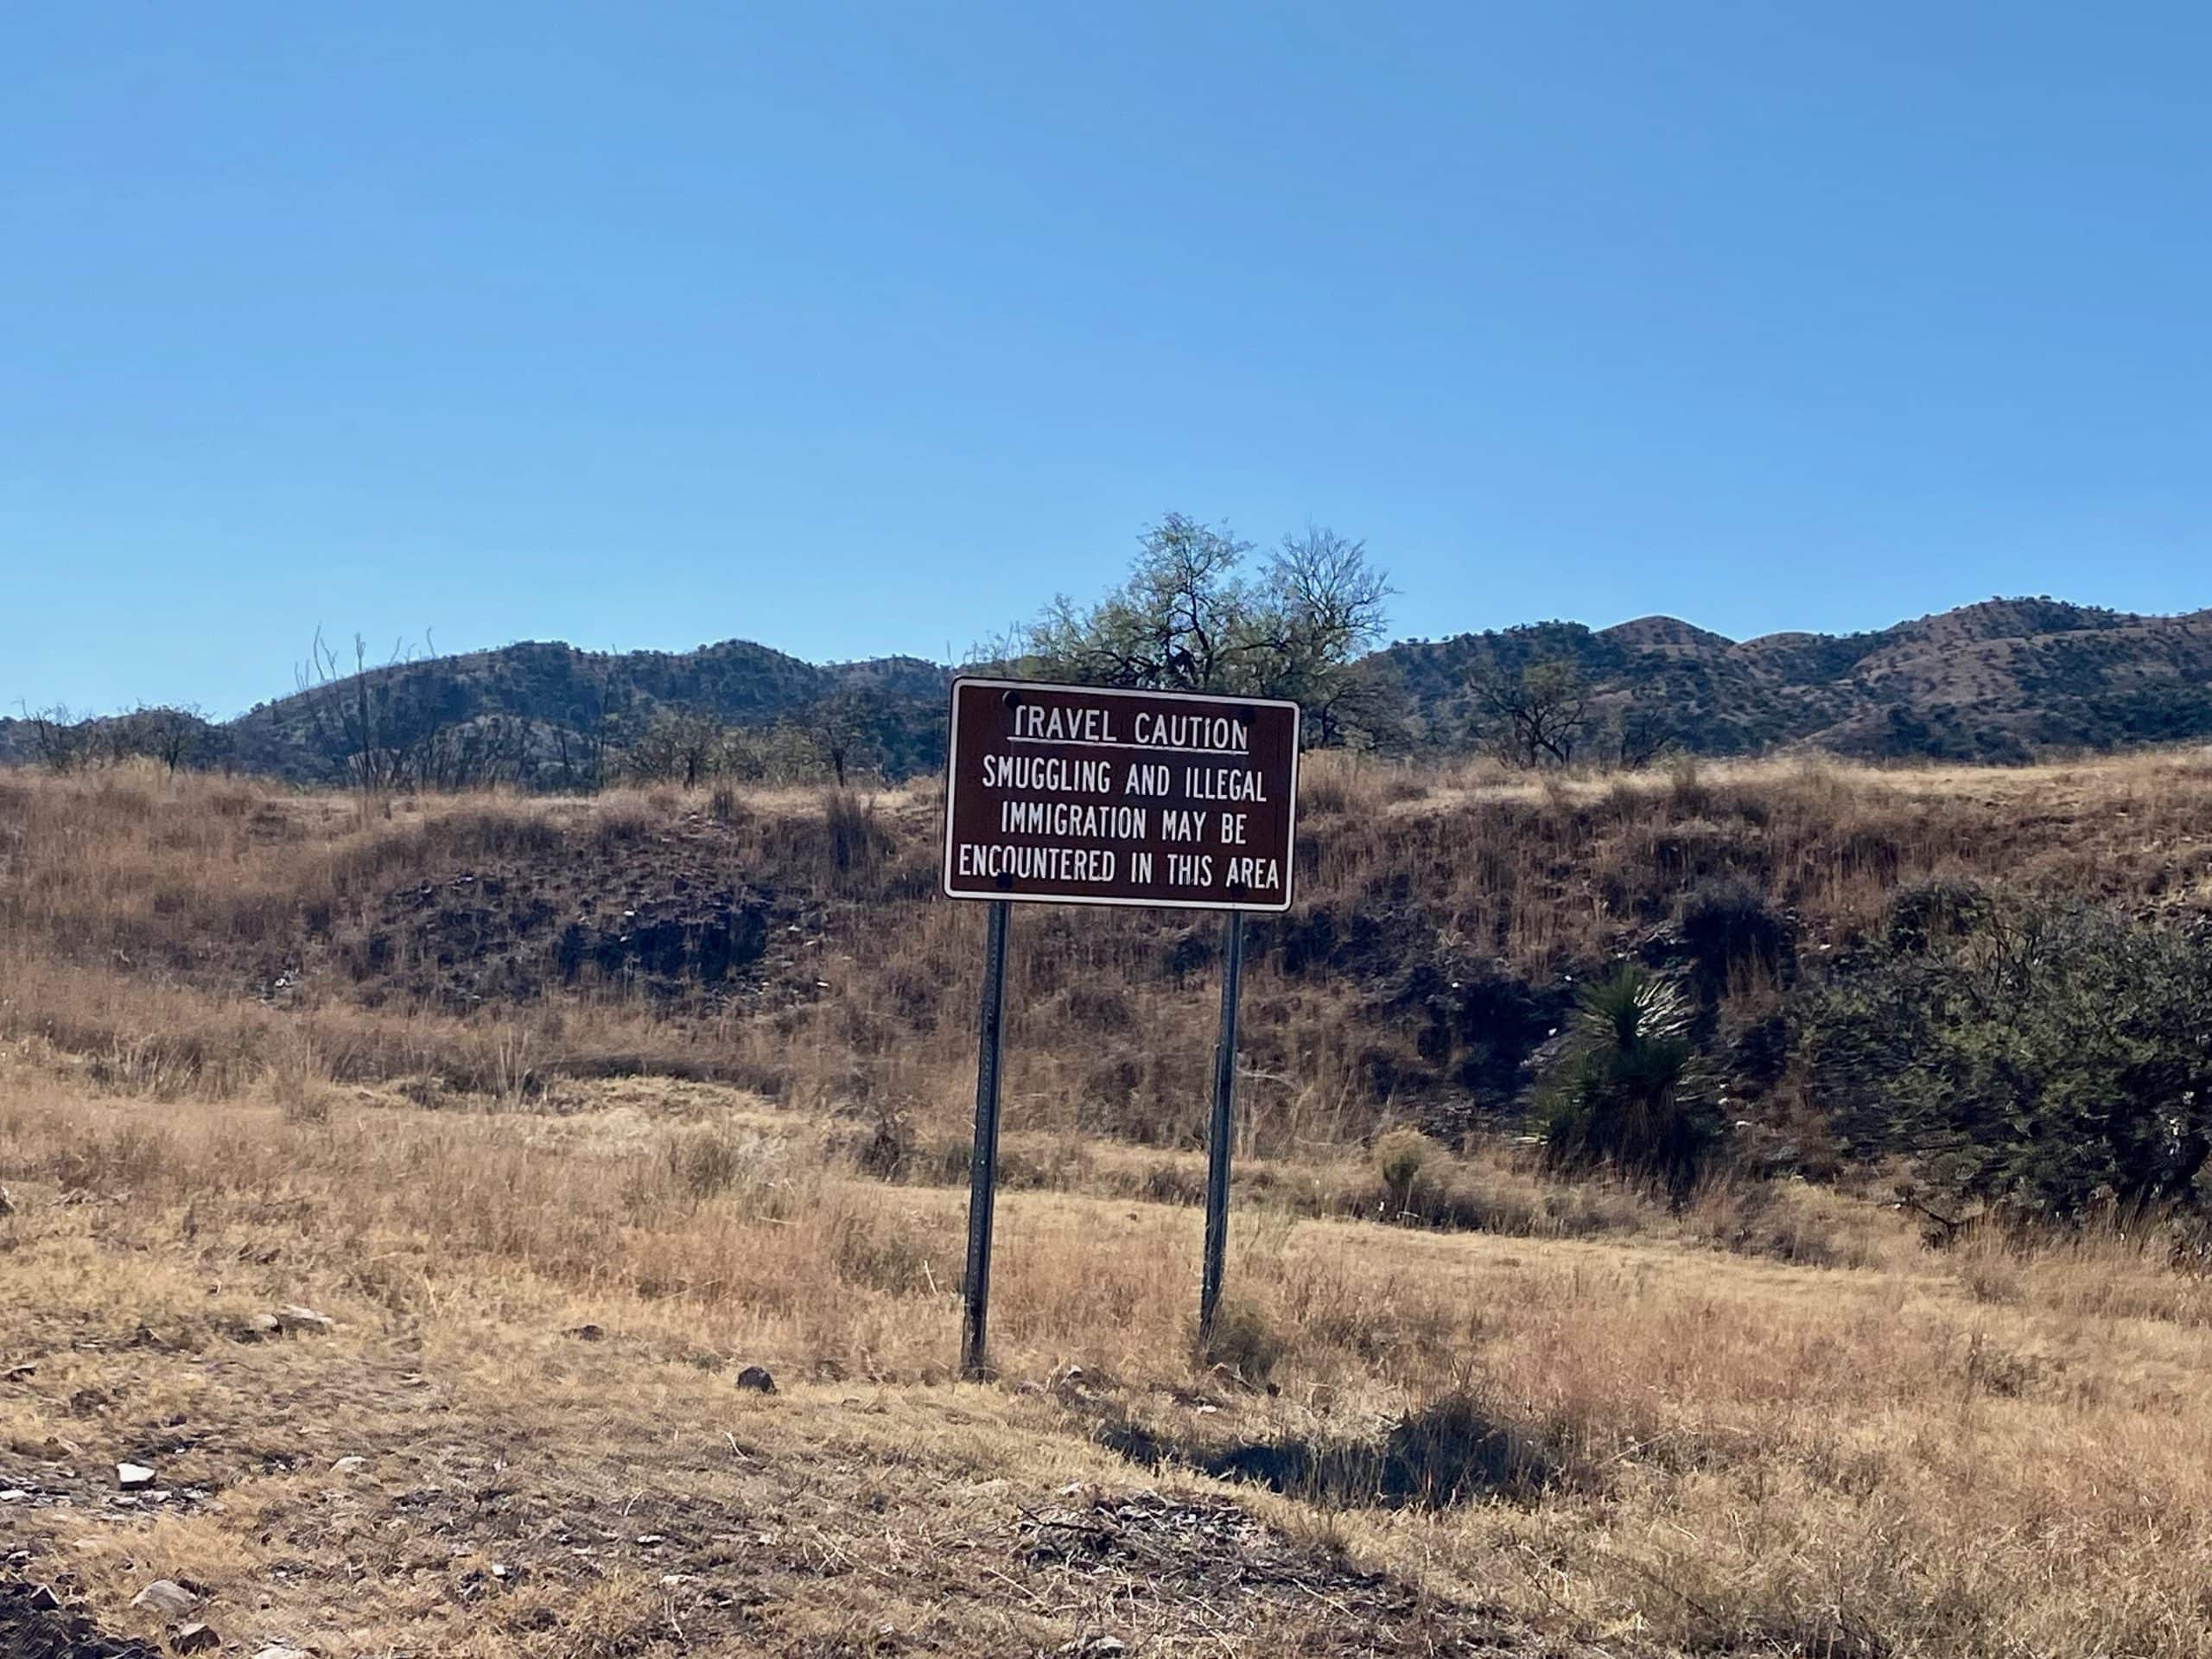 Caution sign along gravel portion of Ruby Road in the Coronado National Forest.